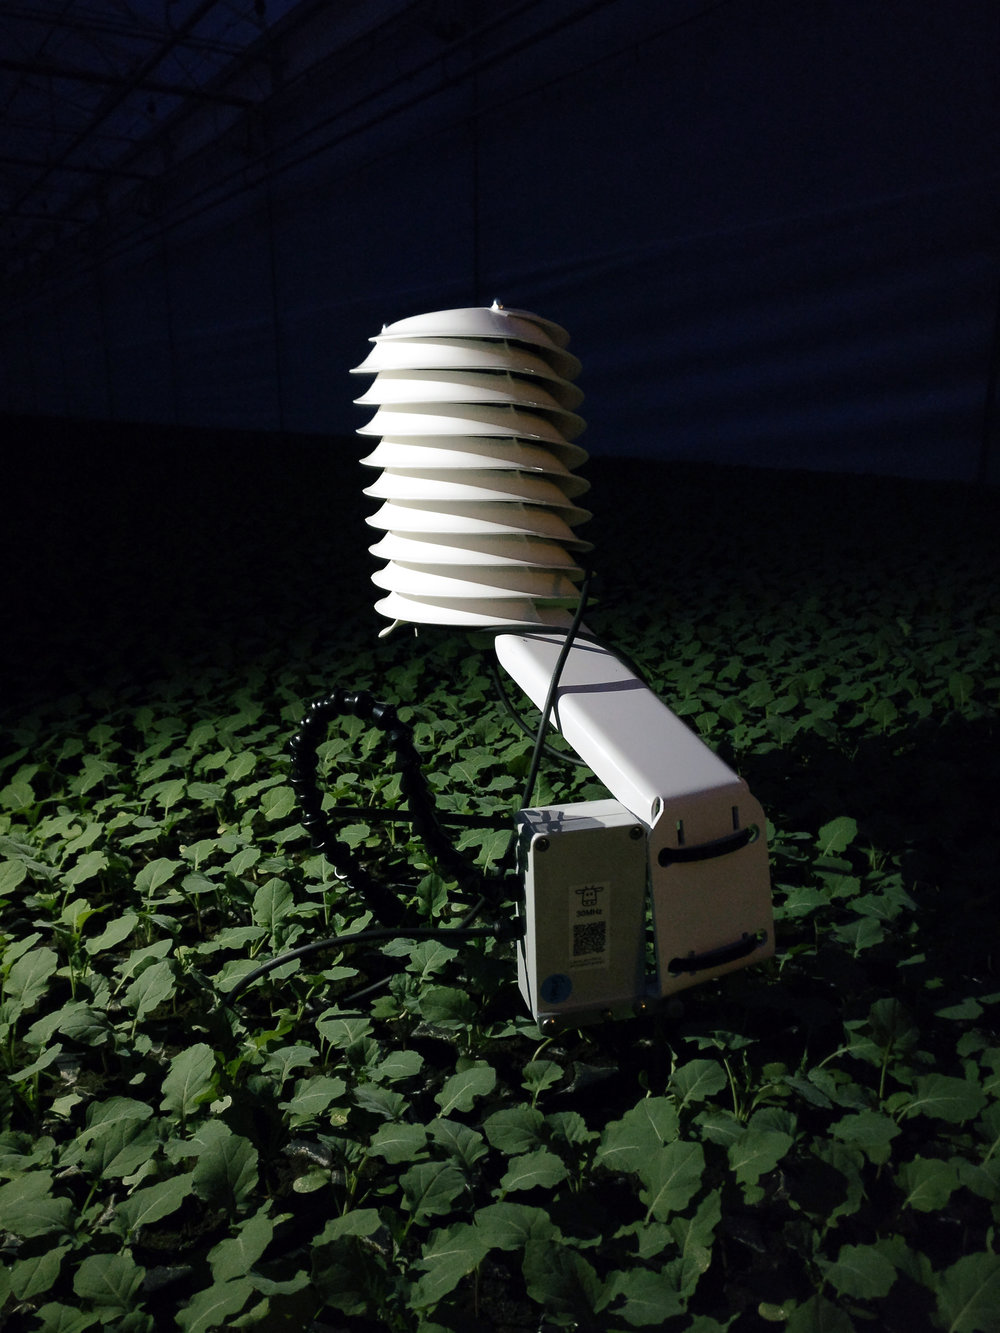 MeteoShield Professional solar radiation shield at night in agriculture